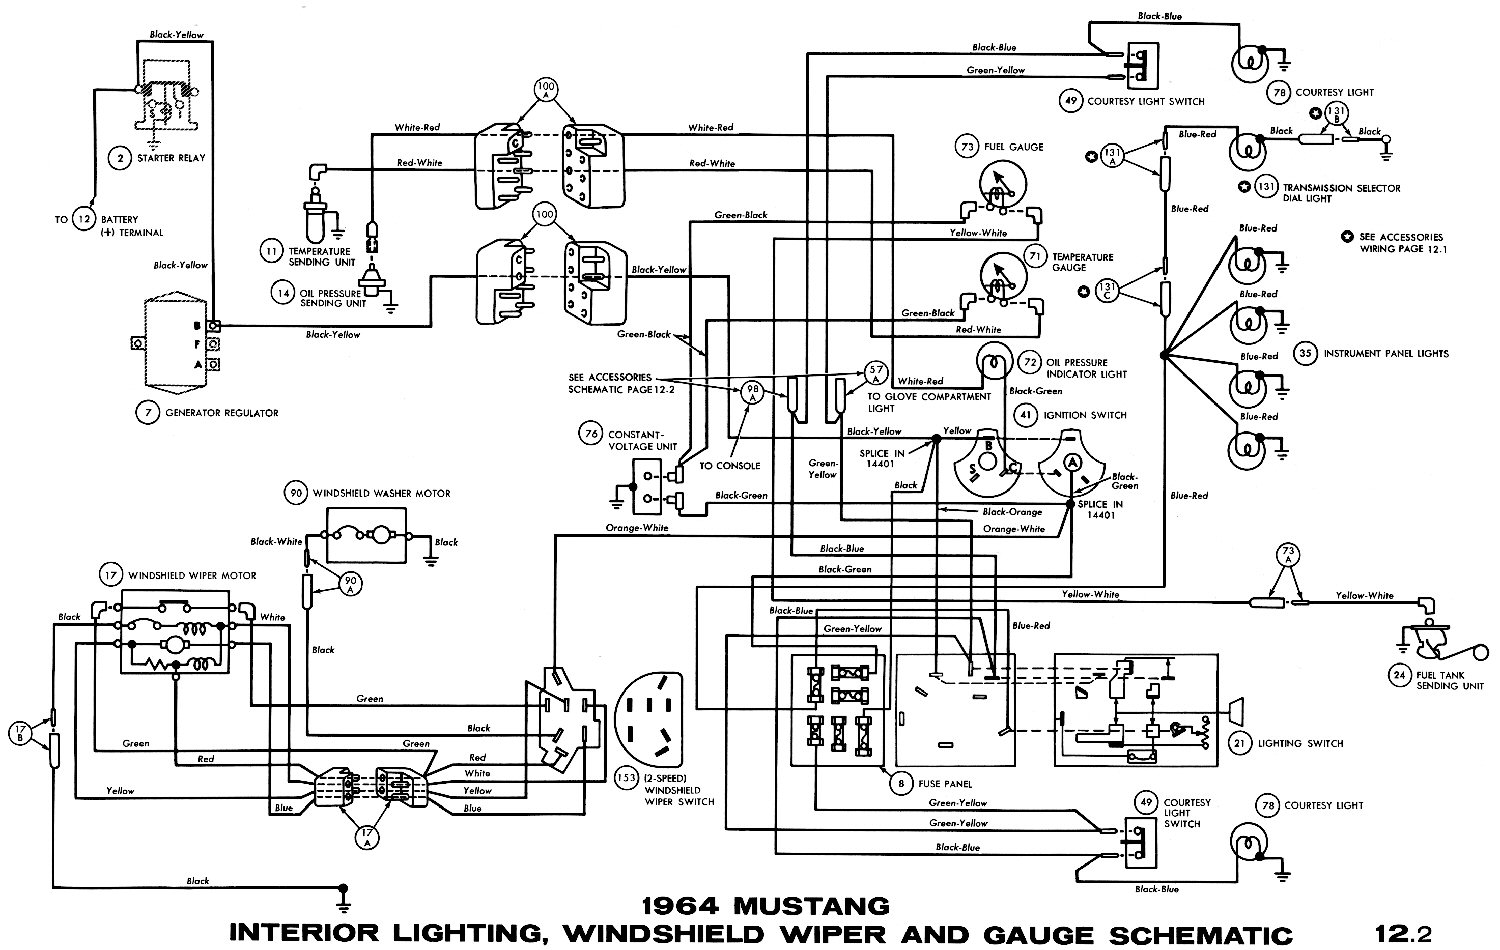 1964k 1964 mustang wiring diagrams average joe restoration 1966 mustang wiring diagrams at webbmarketing.co